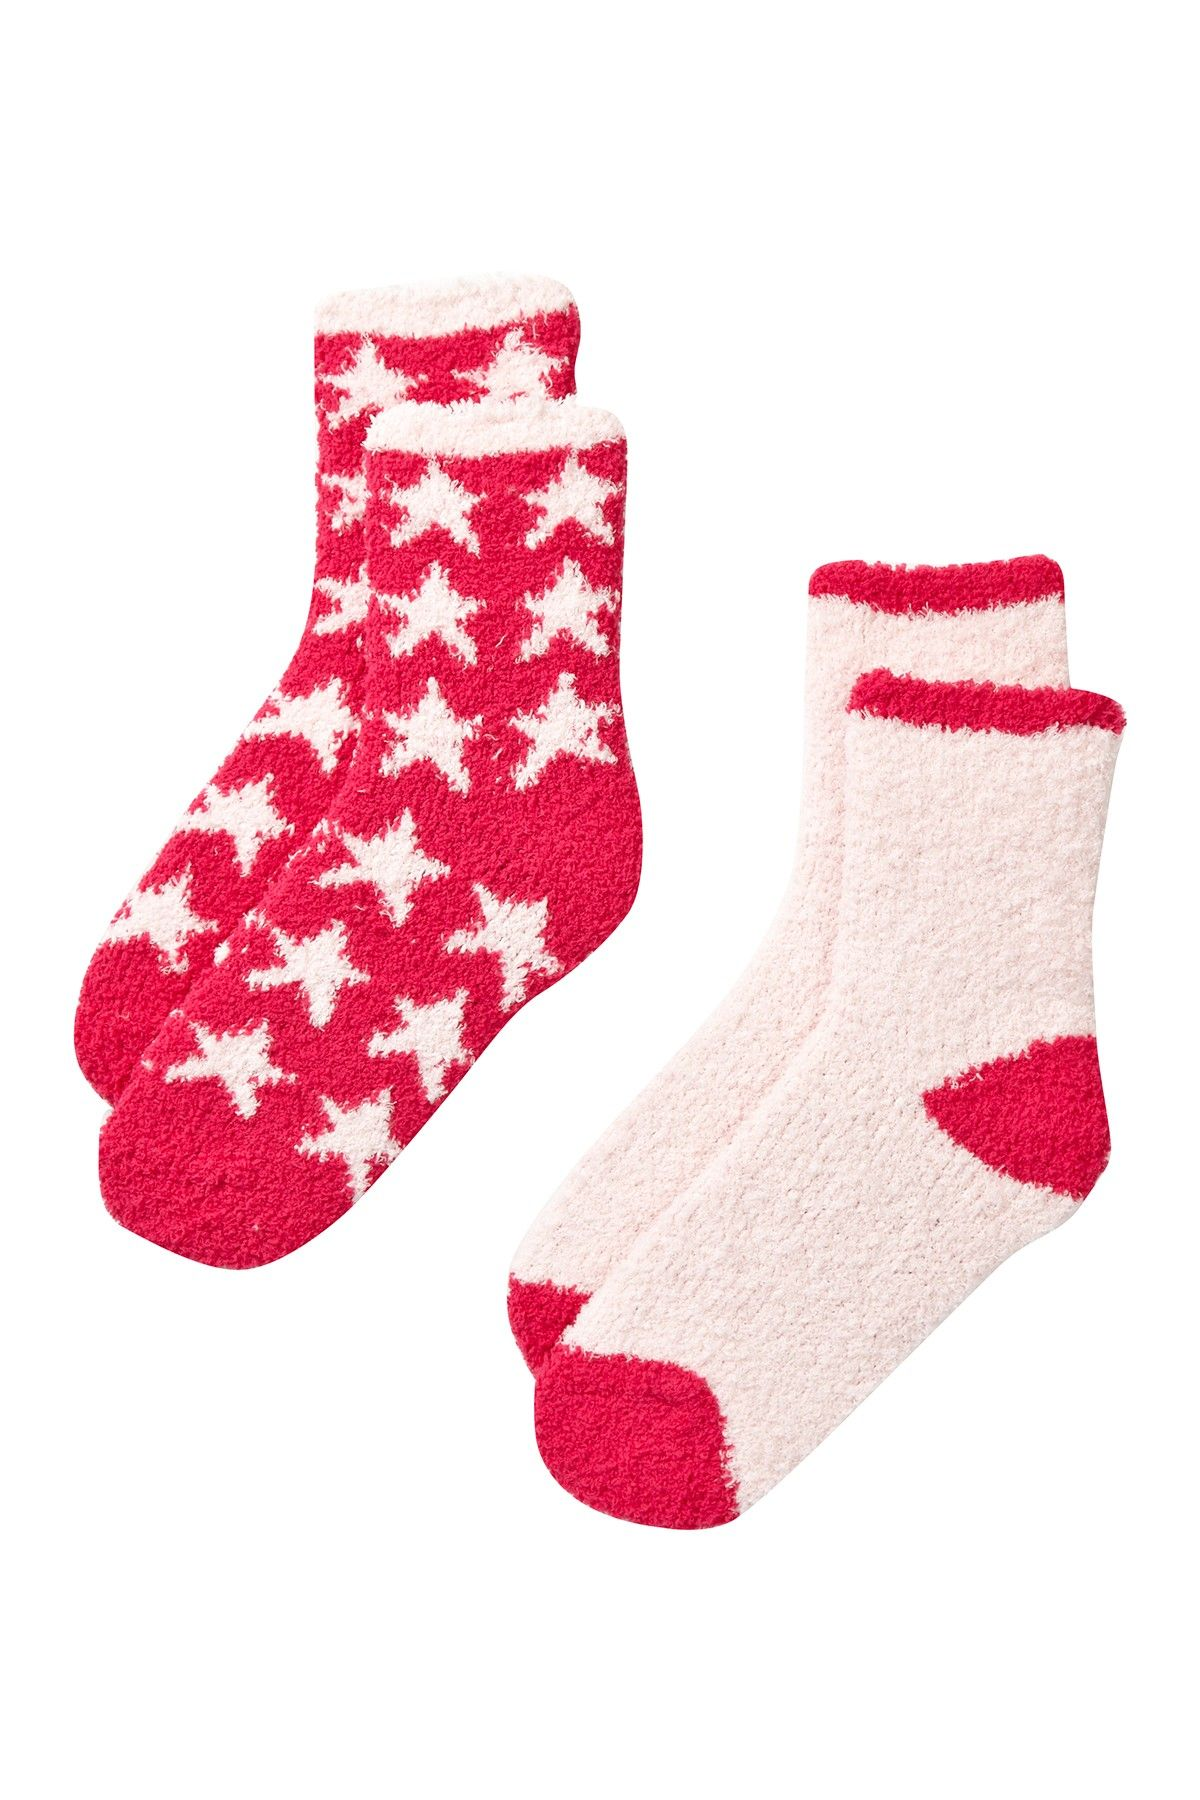 Patterned Fuzzy Socks - Pack of 2   Socks and Nordstrom